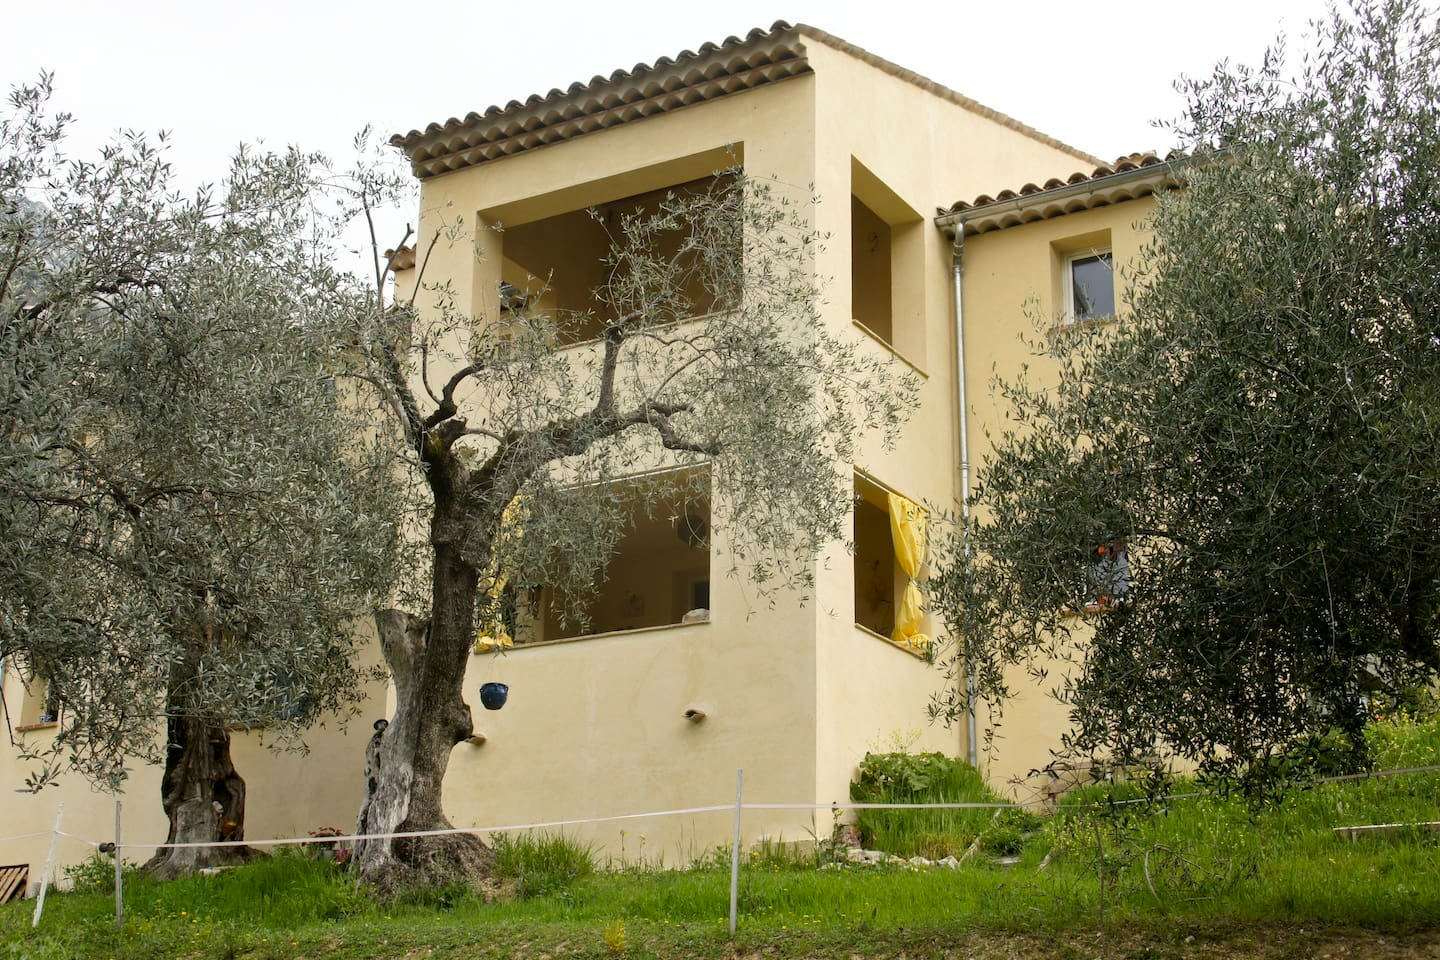 Le studio au rez-de-chaussée dans son écrin d'oliviers. The studio on the ground floor in the olive grove.